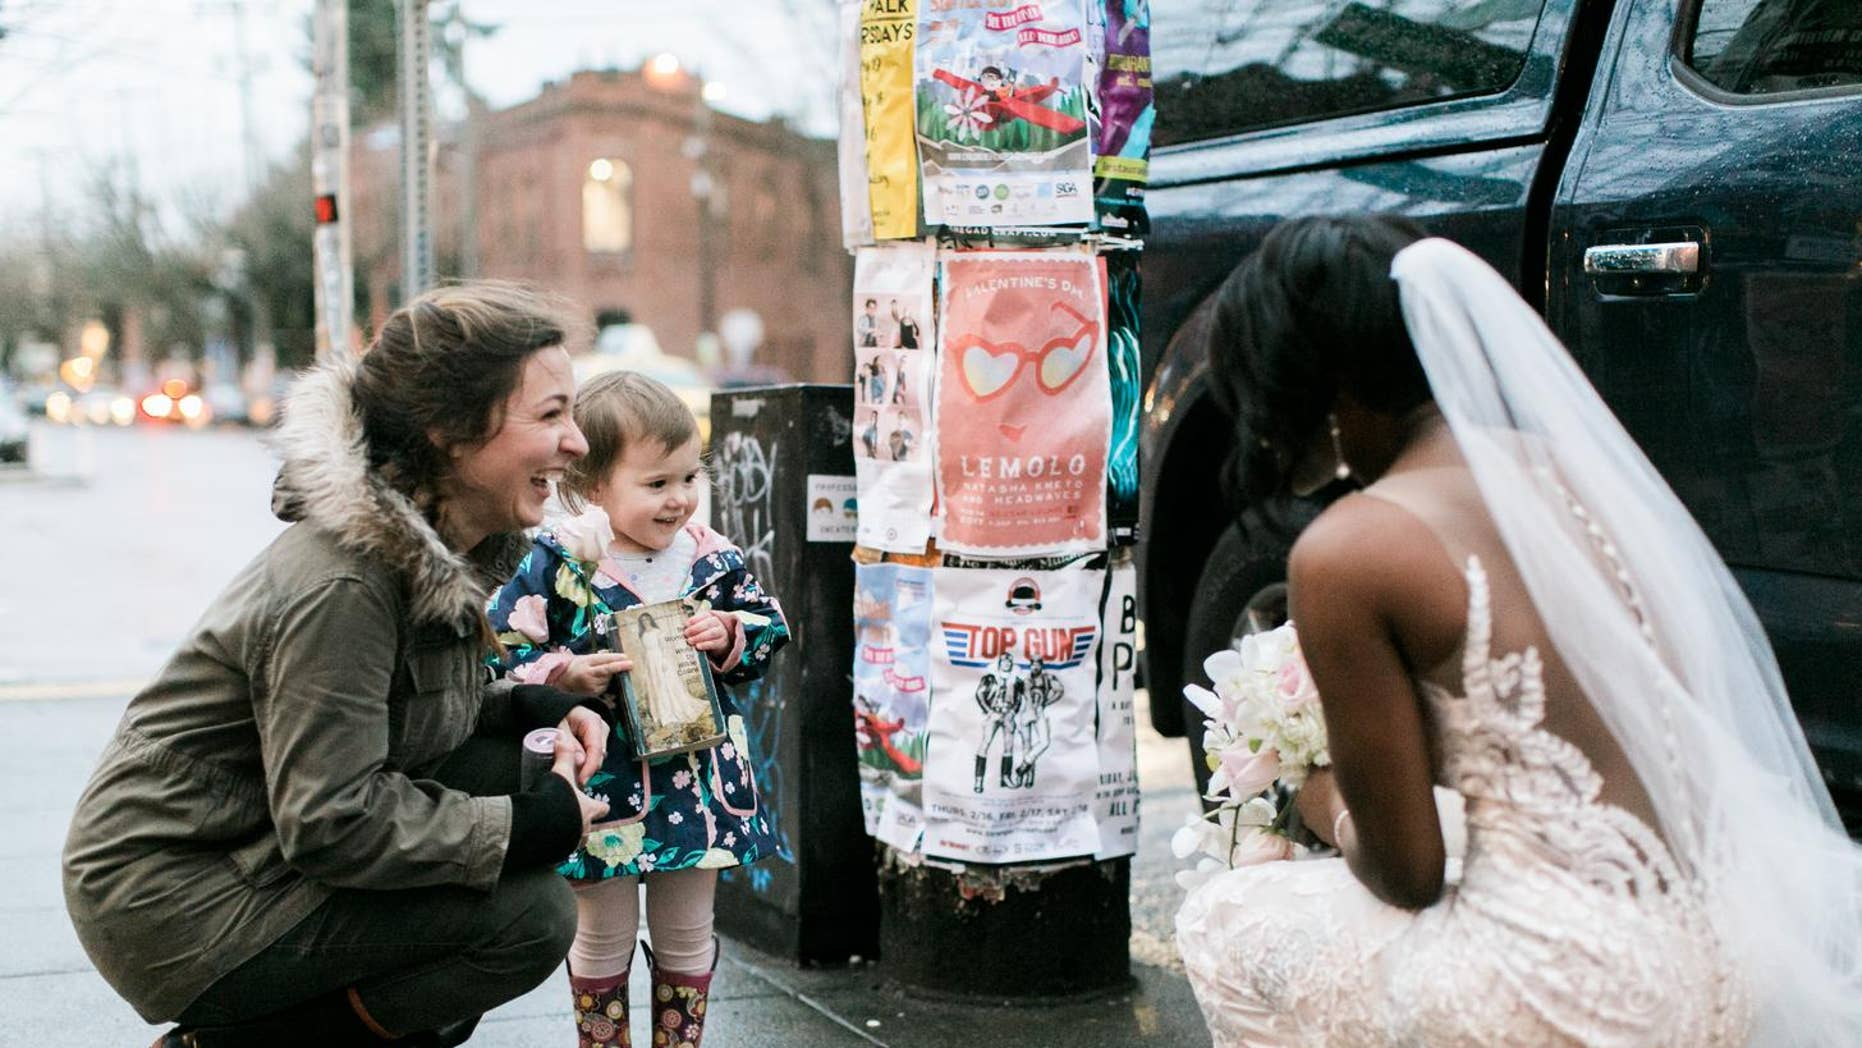 The girl spotted Shandace Lerma in a wedding dress and mistaken her for the princess on the cover. (Stephanie Cristalli Photography)